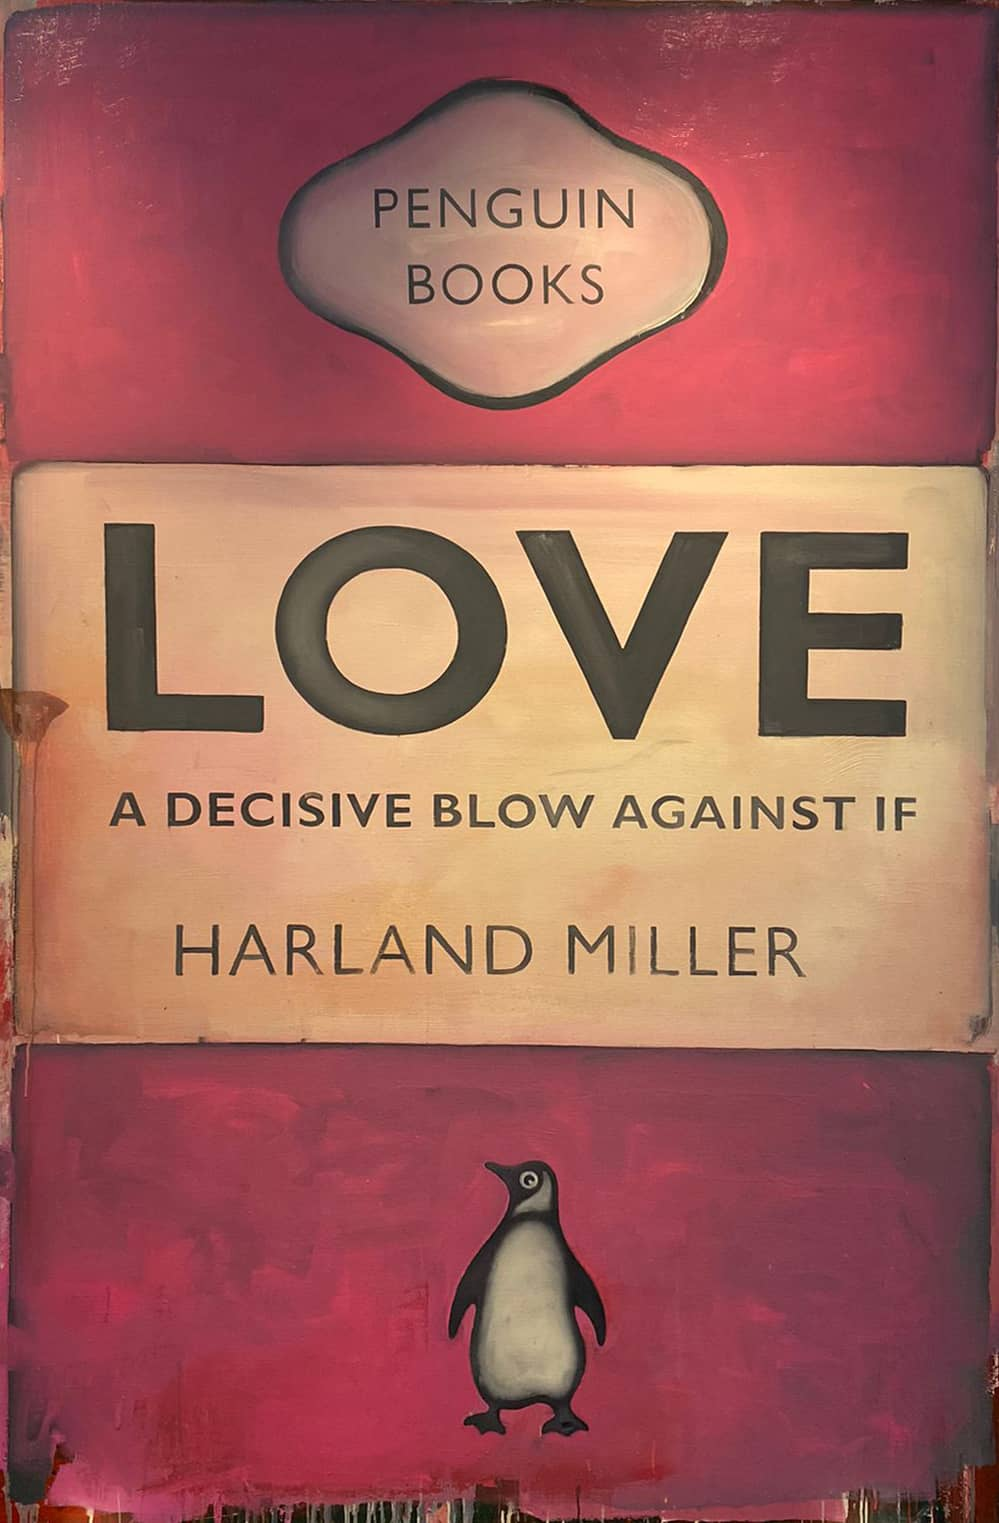 Harland Miller, Love A Decisive Blow Against If, 2013